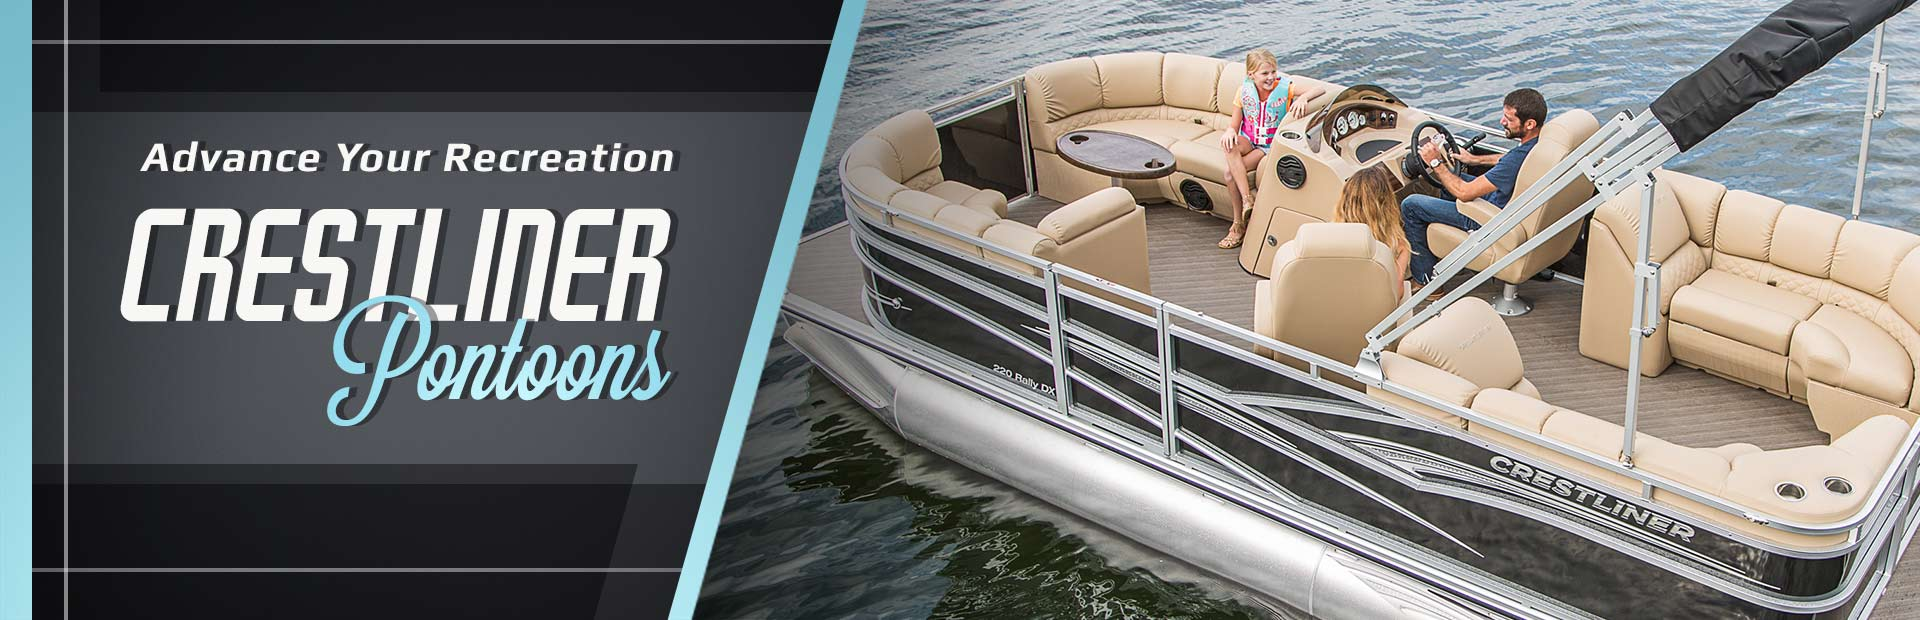 Crestliner Pontoons: Click here to view the models.